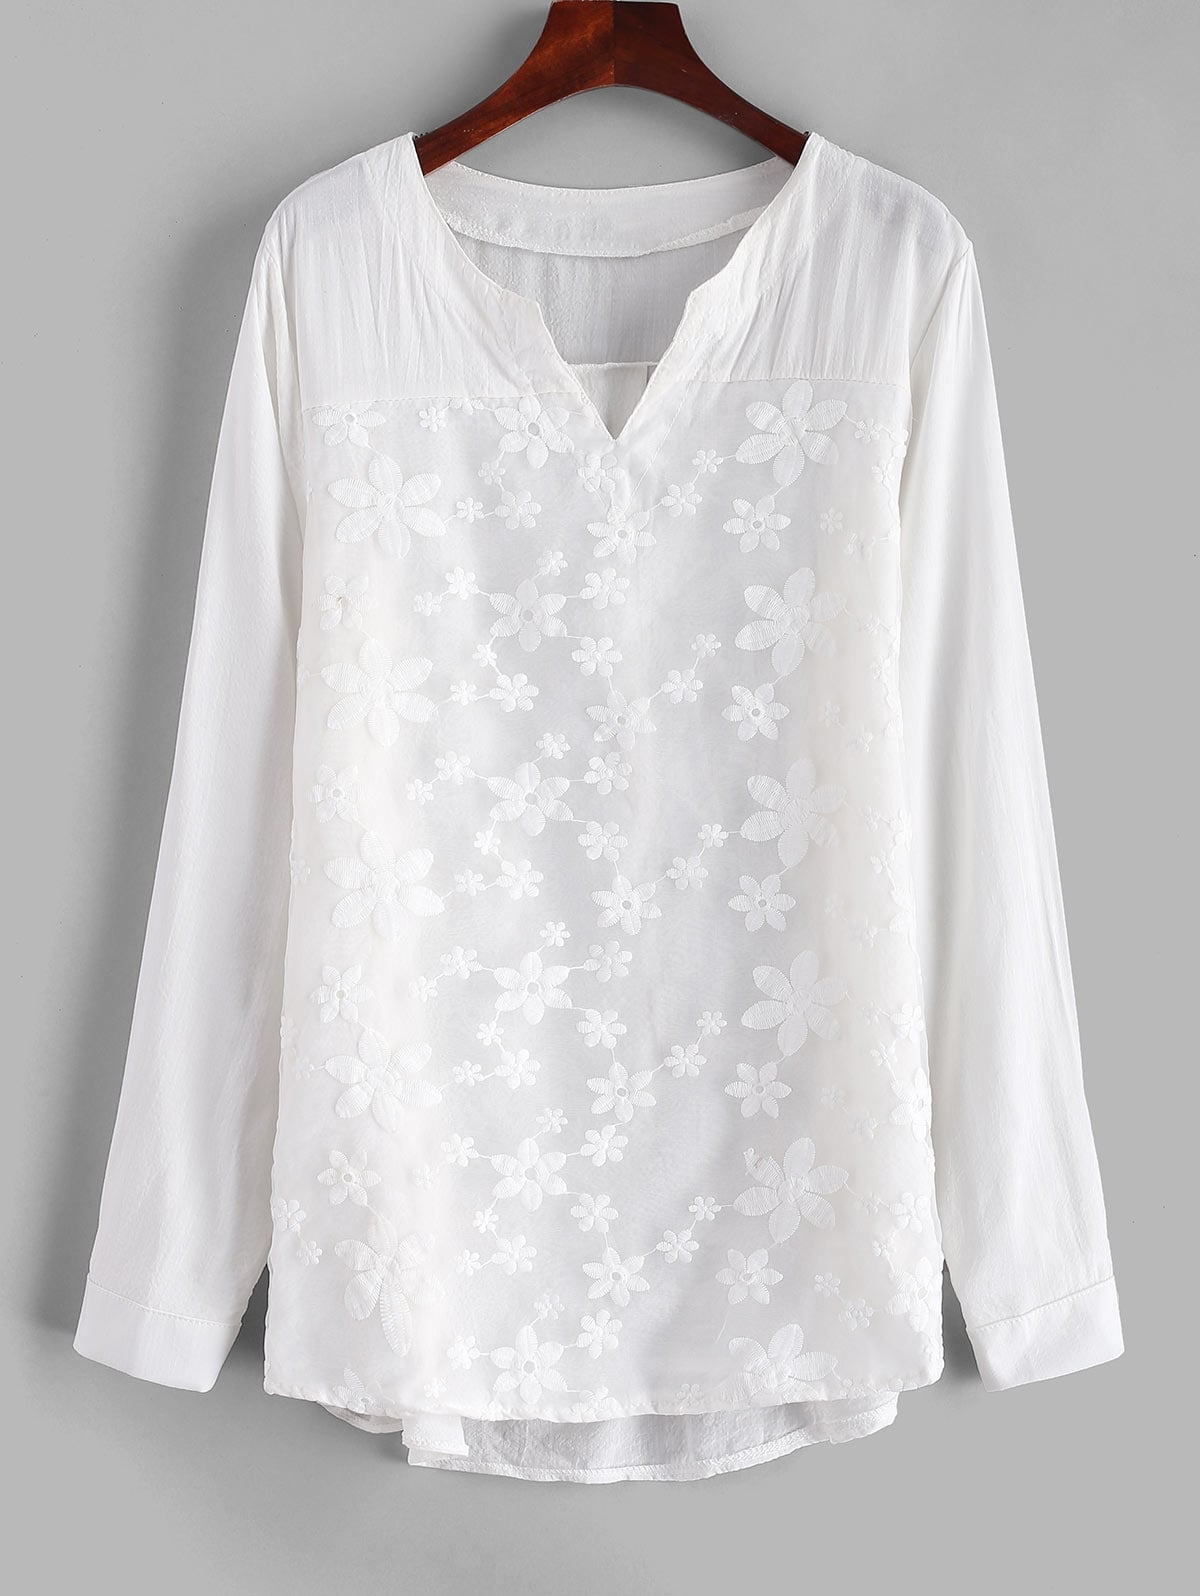 Voile Panel High Low Blouse